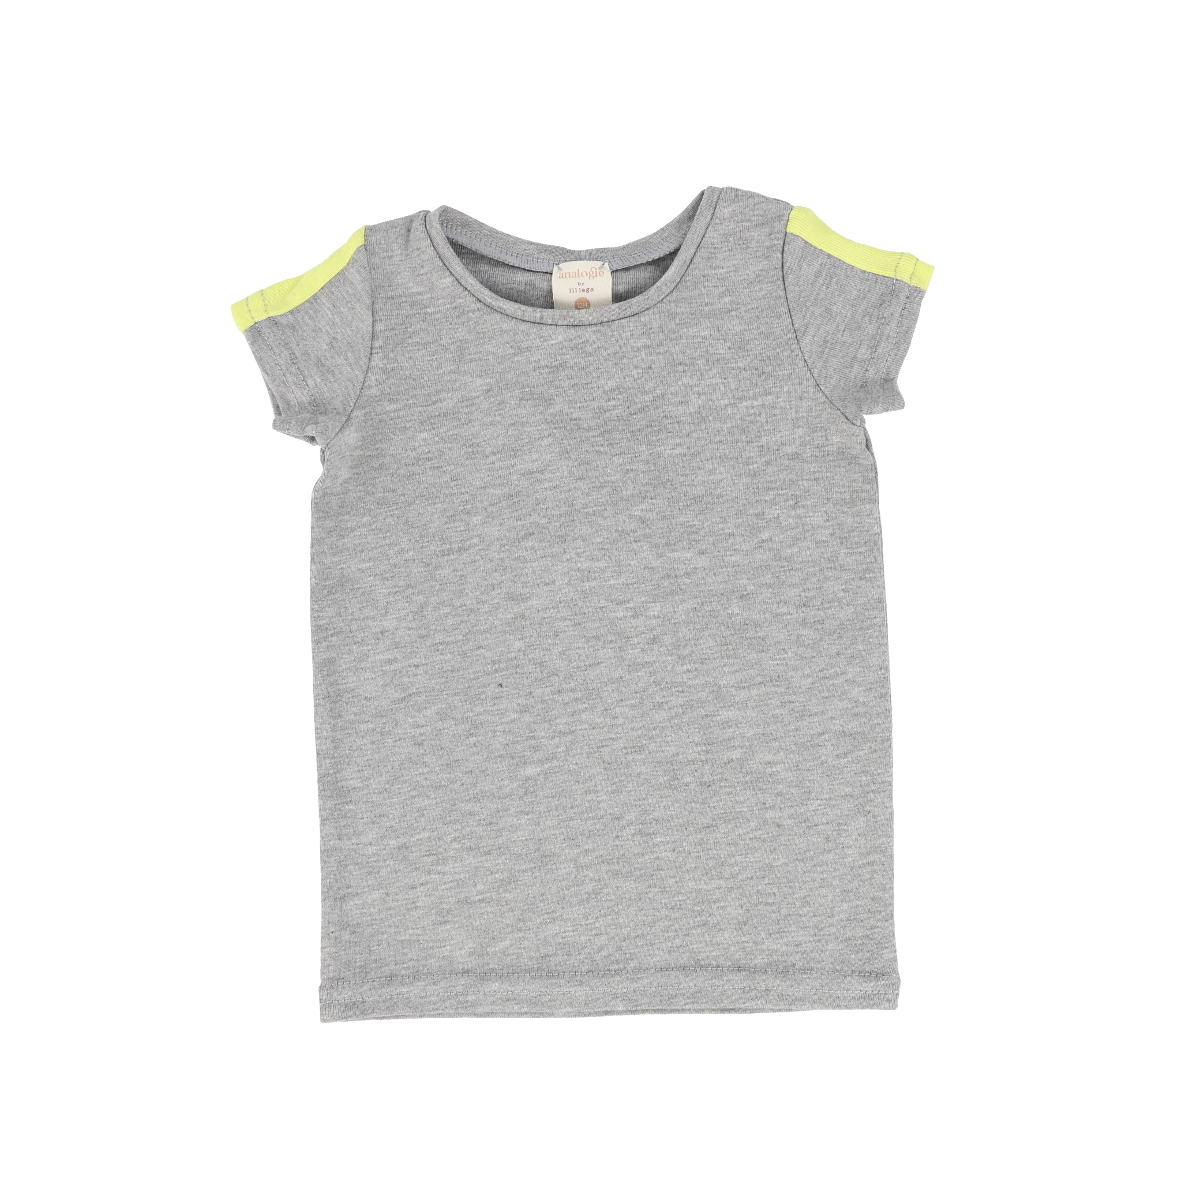 Analogie GreyNeon Short Sleeve Linear Tee